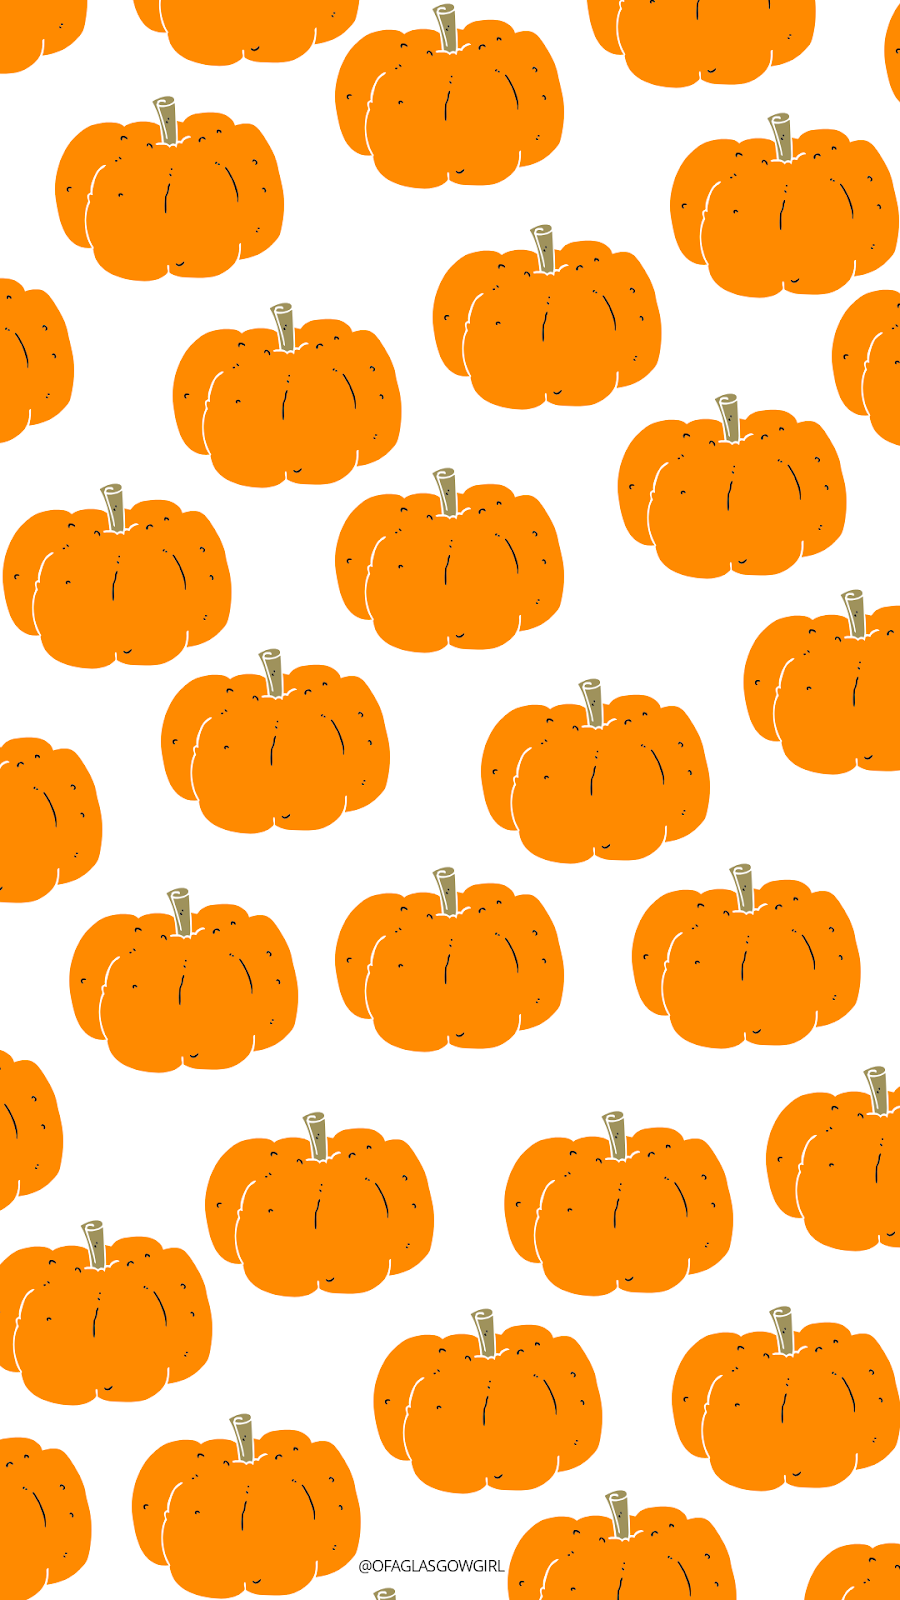 Halloween phone wallpaper or instagram template with a repeated pattern of orange pumpkins on it.